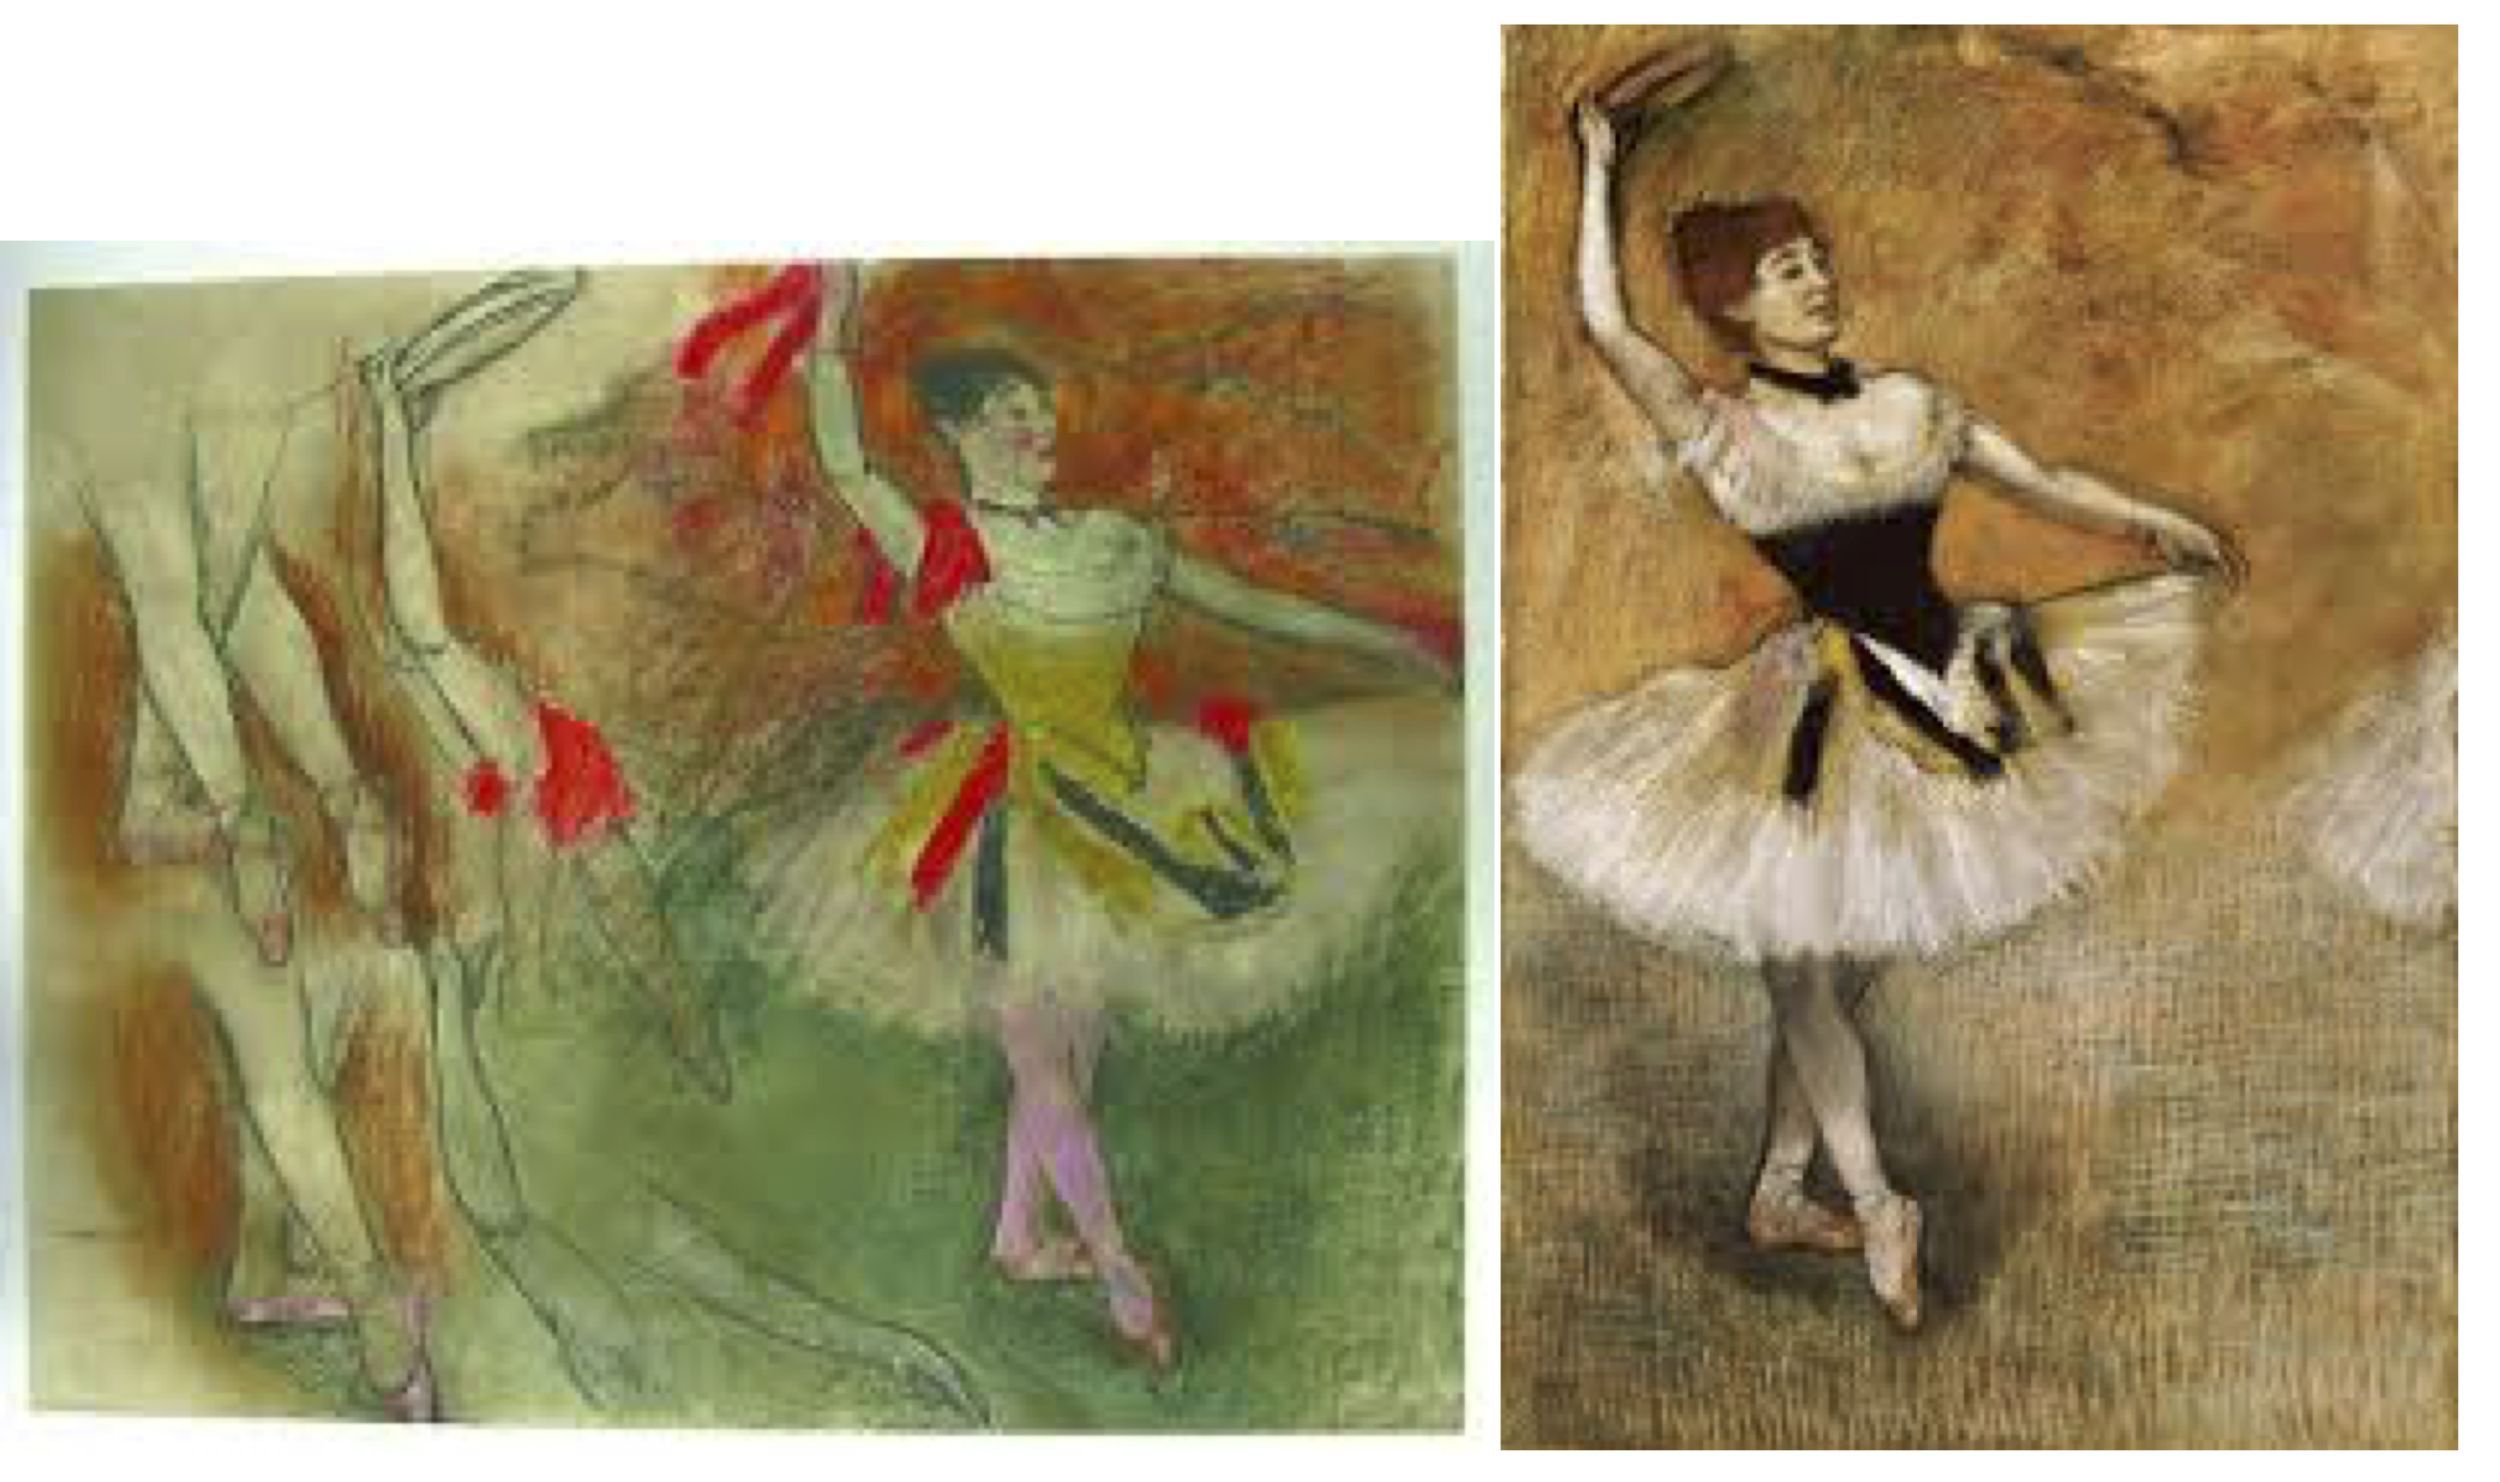 """Dancer with a Tambourine"" by Edgar Degas.  On the left, a study; on the right a painting.  Images via  articles.courant.com  and  fineartamerica.com ."